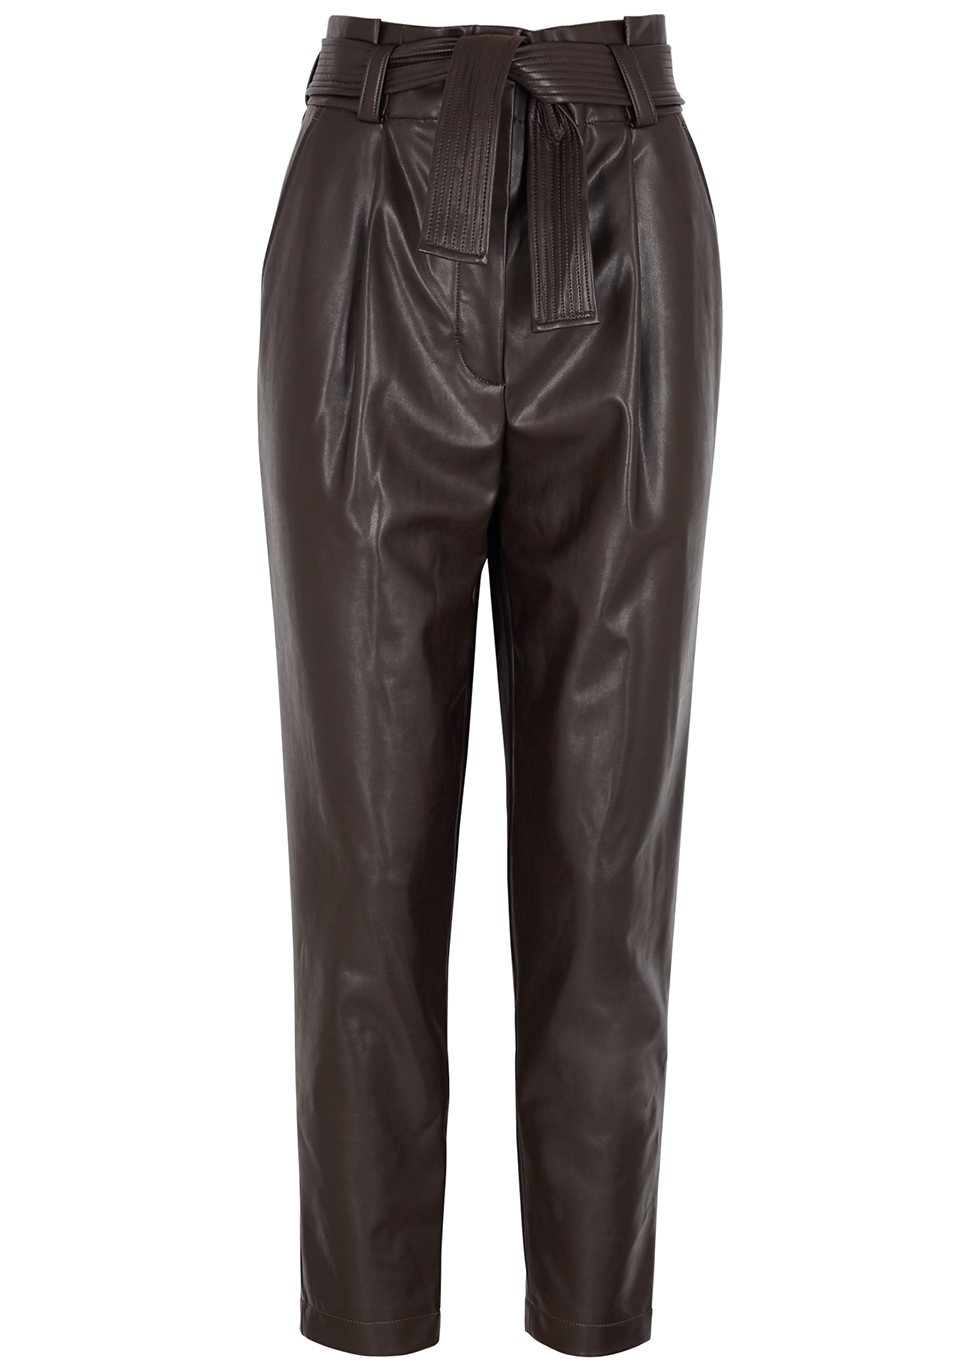 Cobey brown tapered faux leather trousers